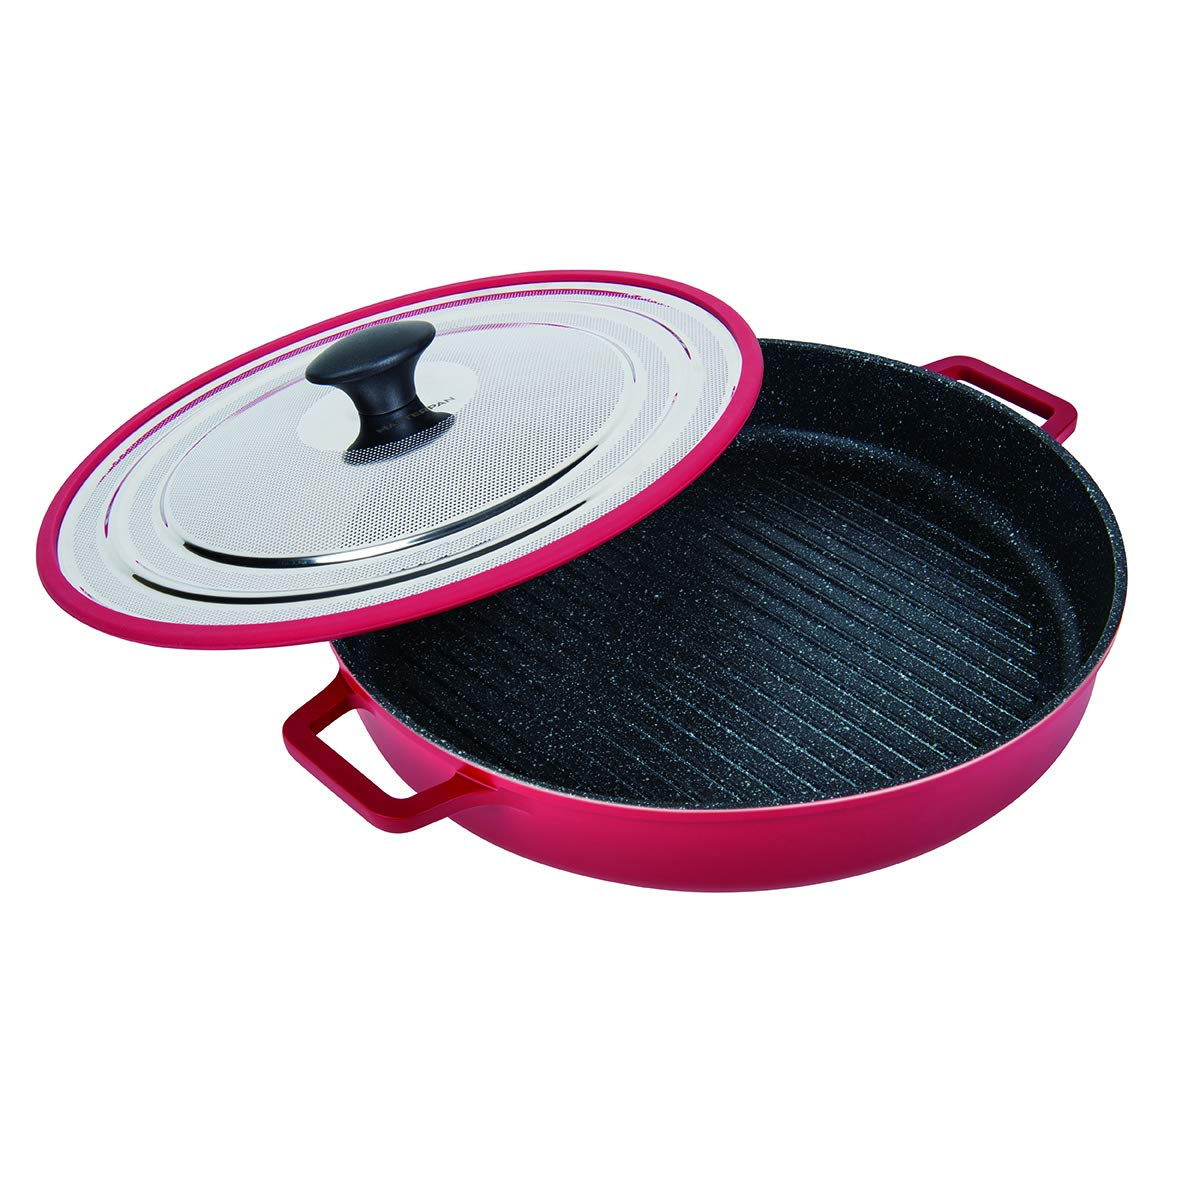 MasterPan Non-Stick Stovetop Oven Grill Pan with Heat-in Steam-Out Lid, nonstick cookware, 12'', Red, MP-106 by Master Pan